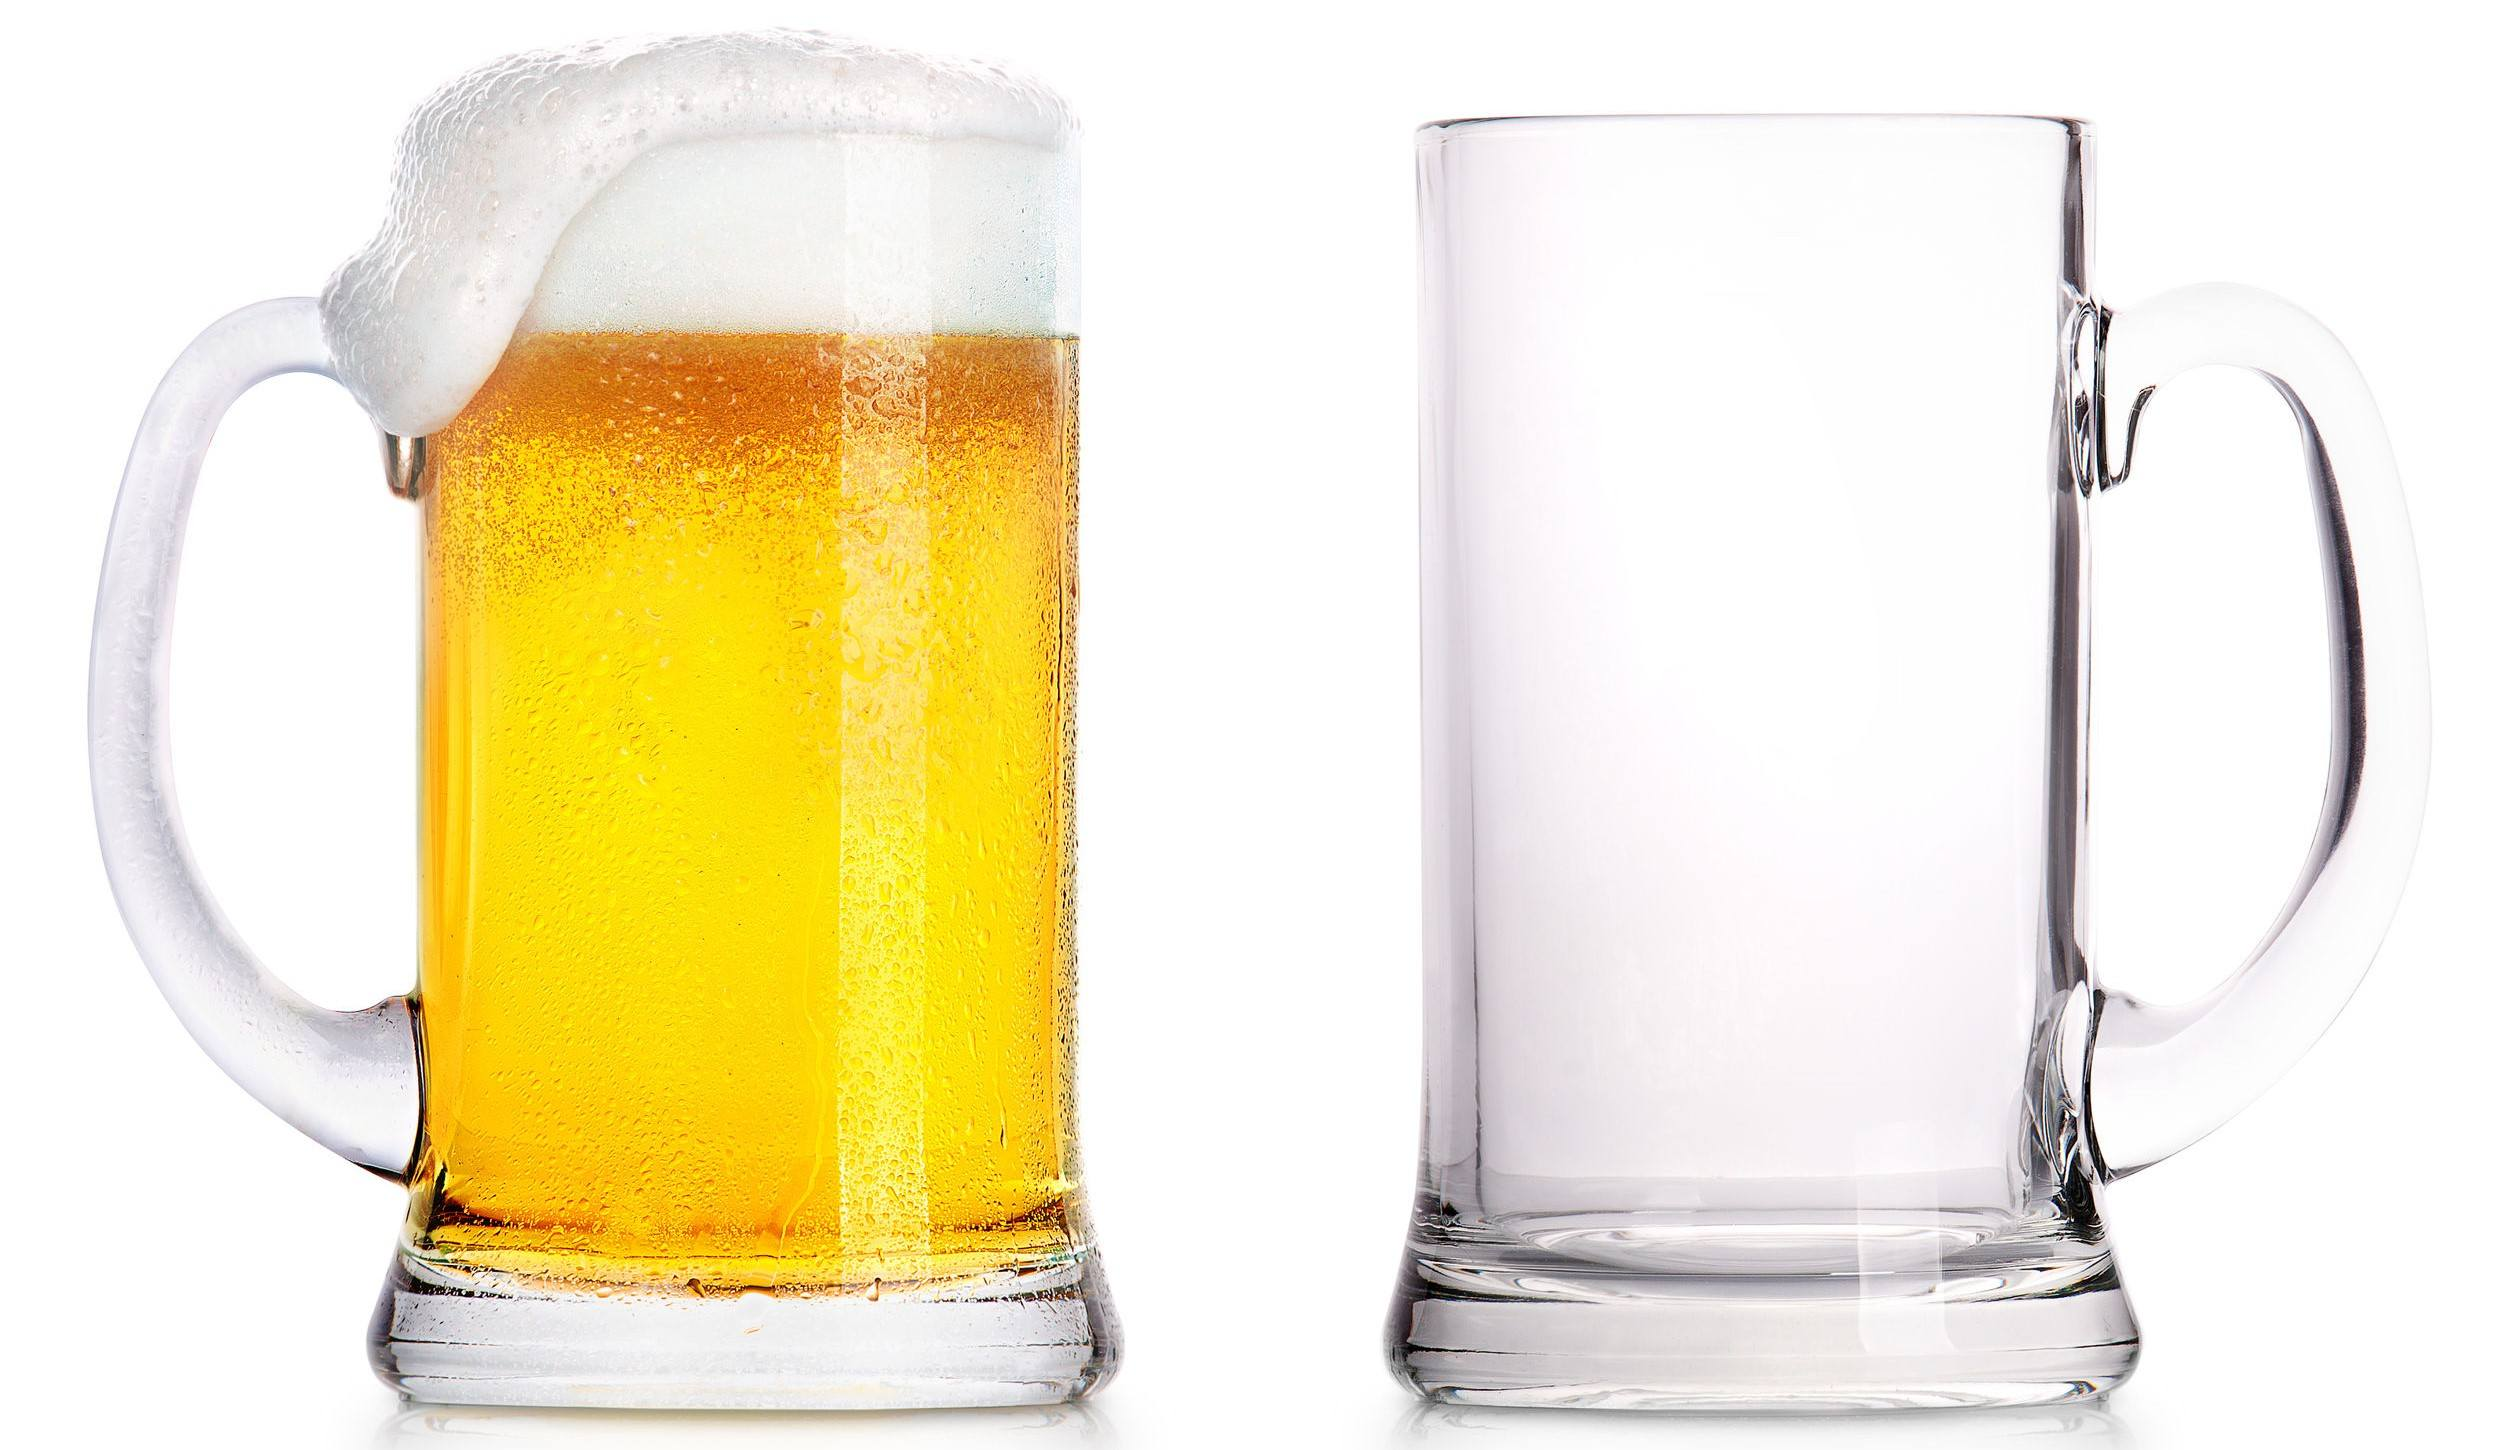 Two beer mugs, one with beer, the other empty because of Dry January.